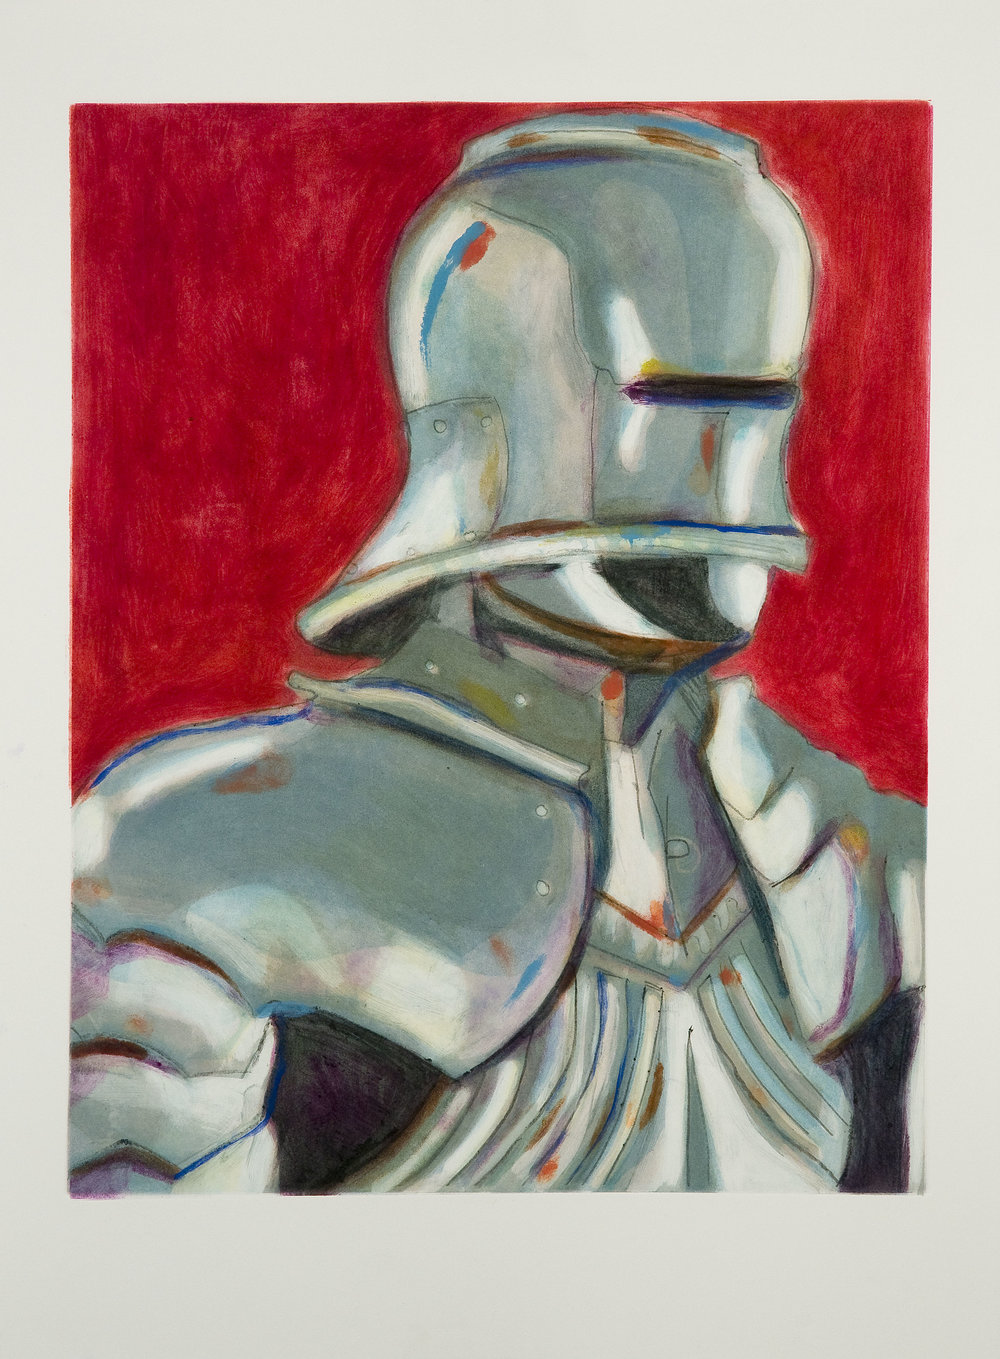 Self Portrait (Armor) (IV) , 2008 Monotype Image size: 18.75 x 23.75 inches Paper size: 22 x 30 inches Series of 5